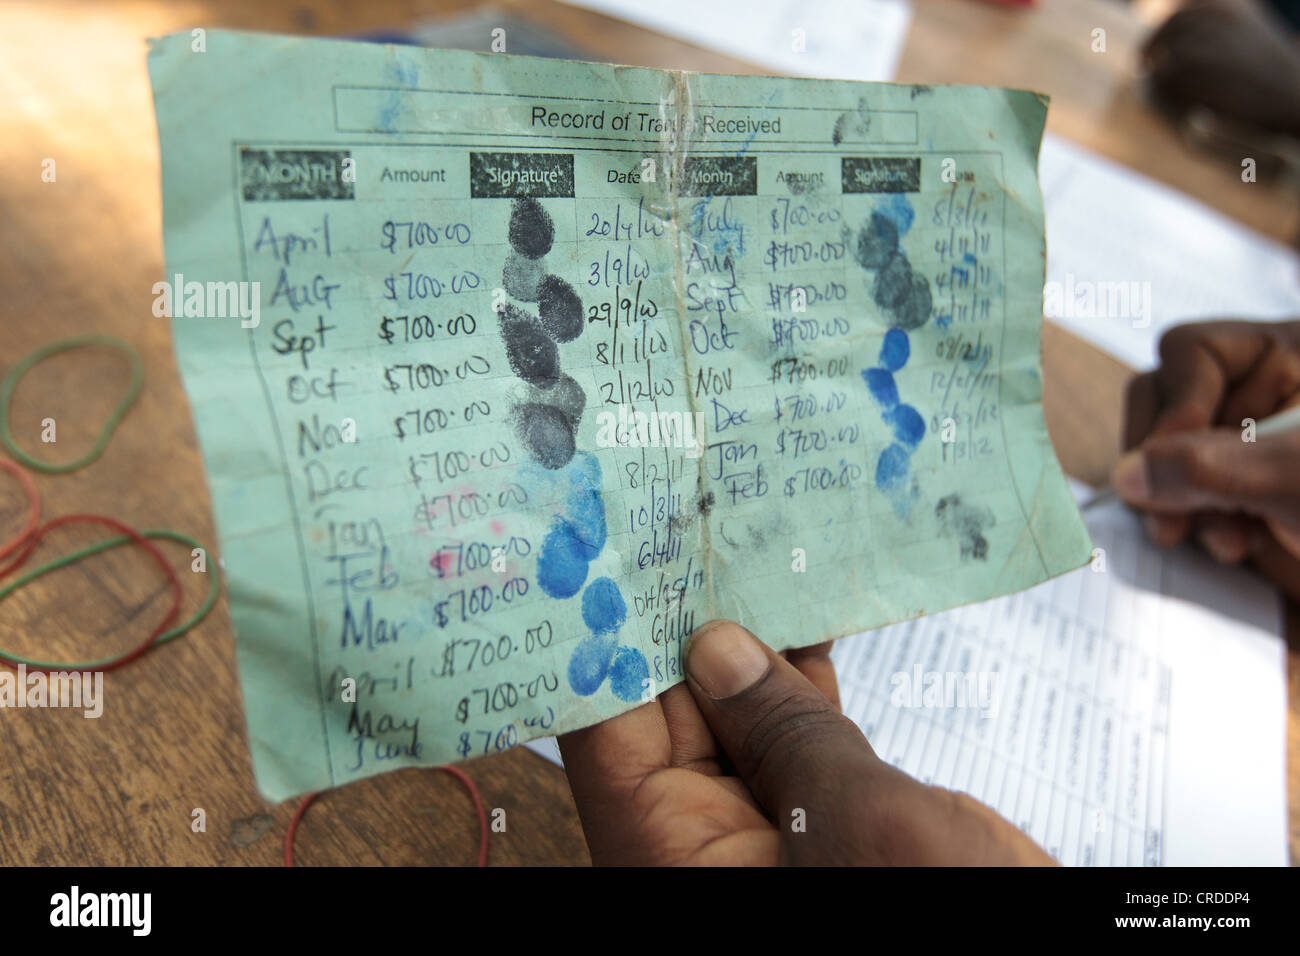 Project staff hold a beneficiary card during a social cash transfer programme distribution in the village of Julijuah, - Stock Image